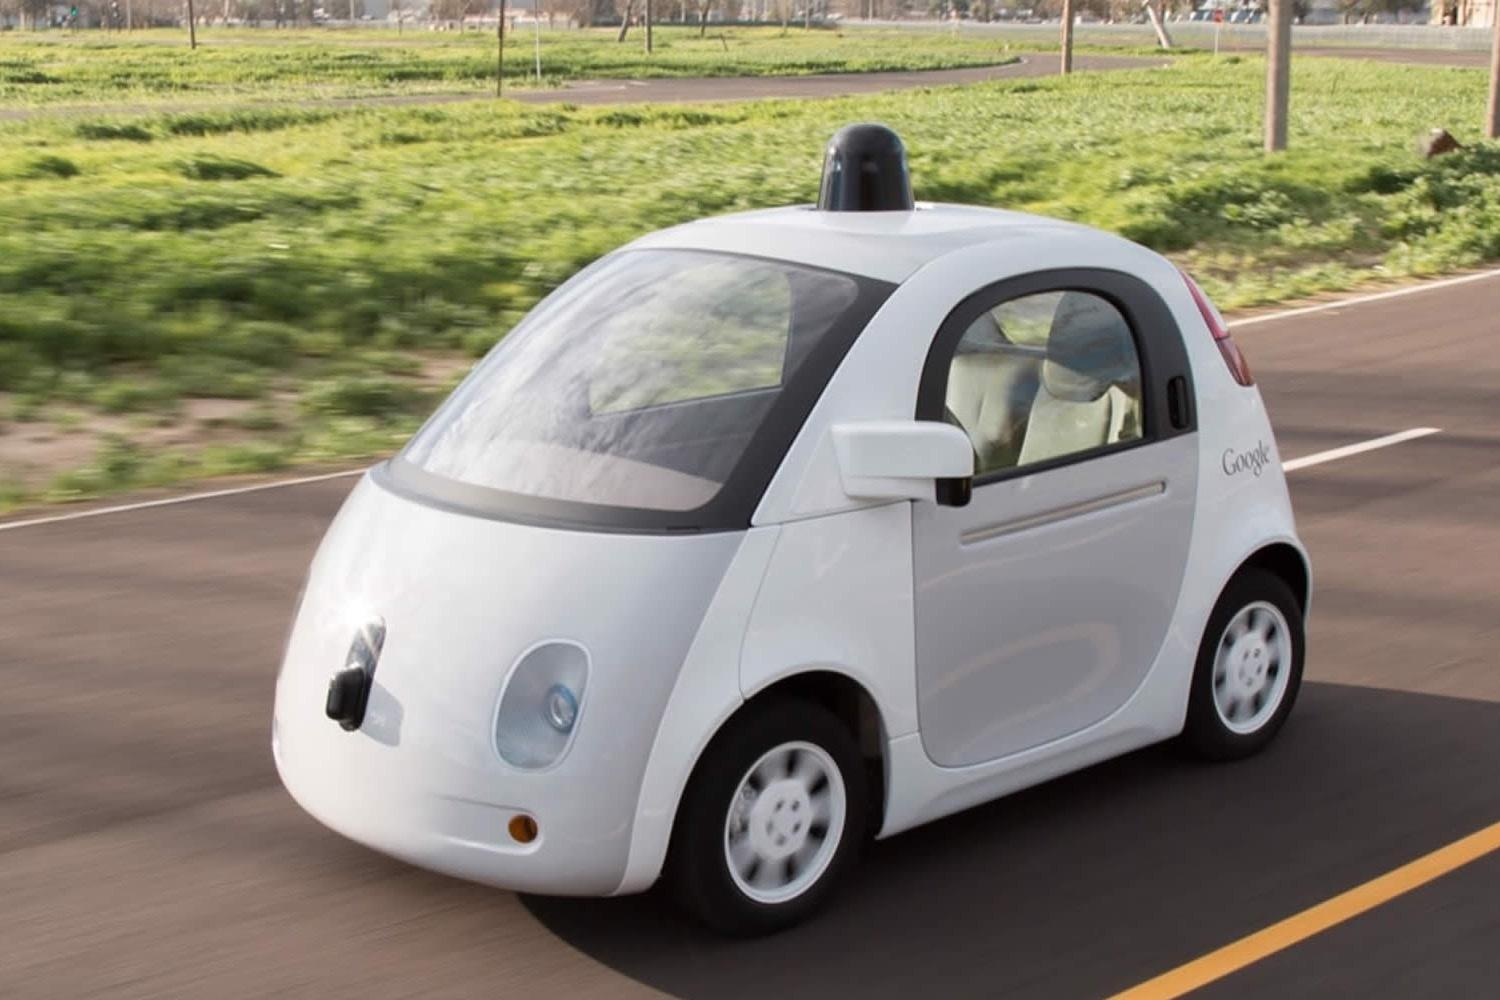 Google's driverless cars are going to London